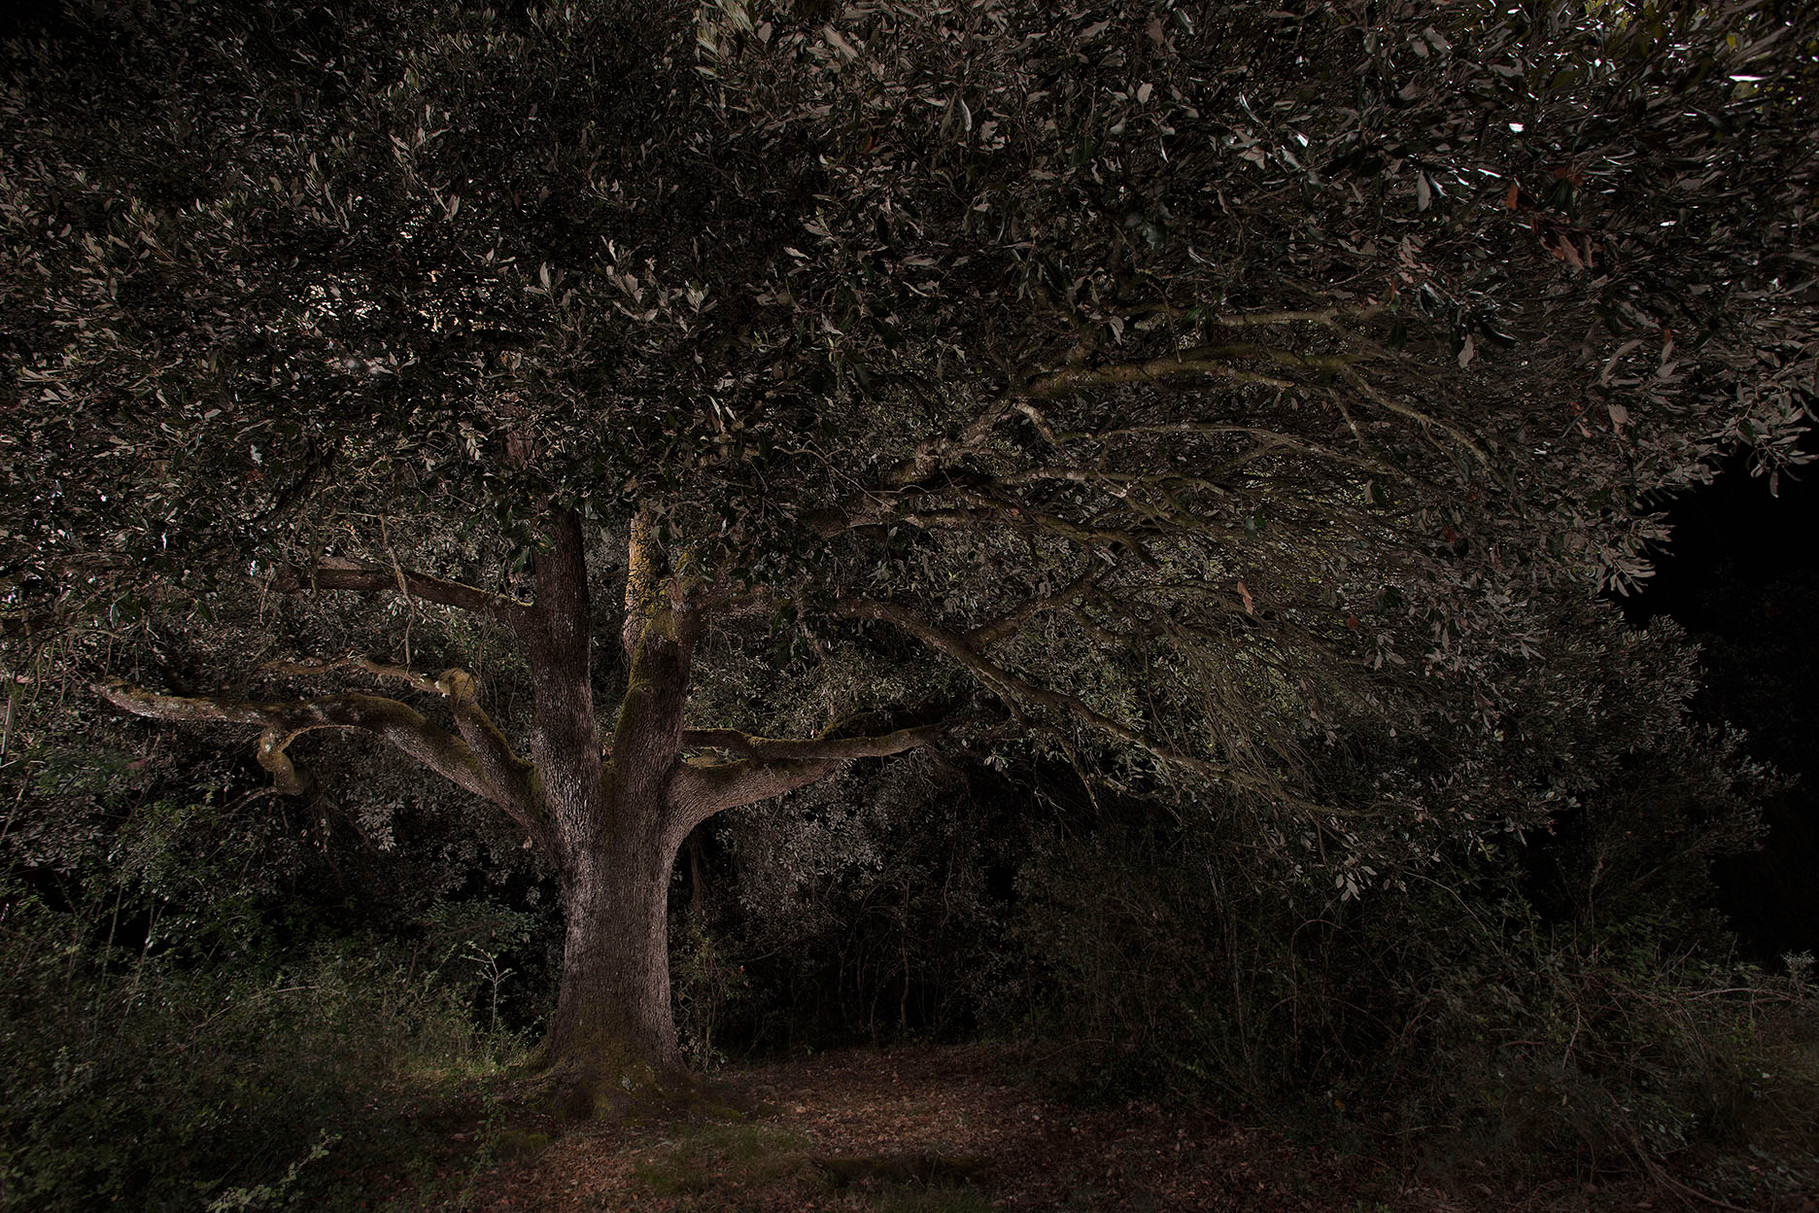 Projecte personal; Arbres il·luminats. Proyecto personal; árboles iluminados. Personal project; Trees in my own light.